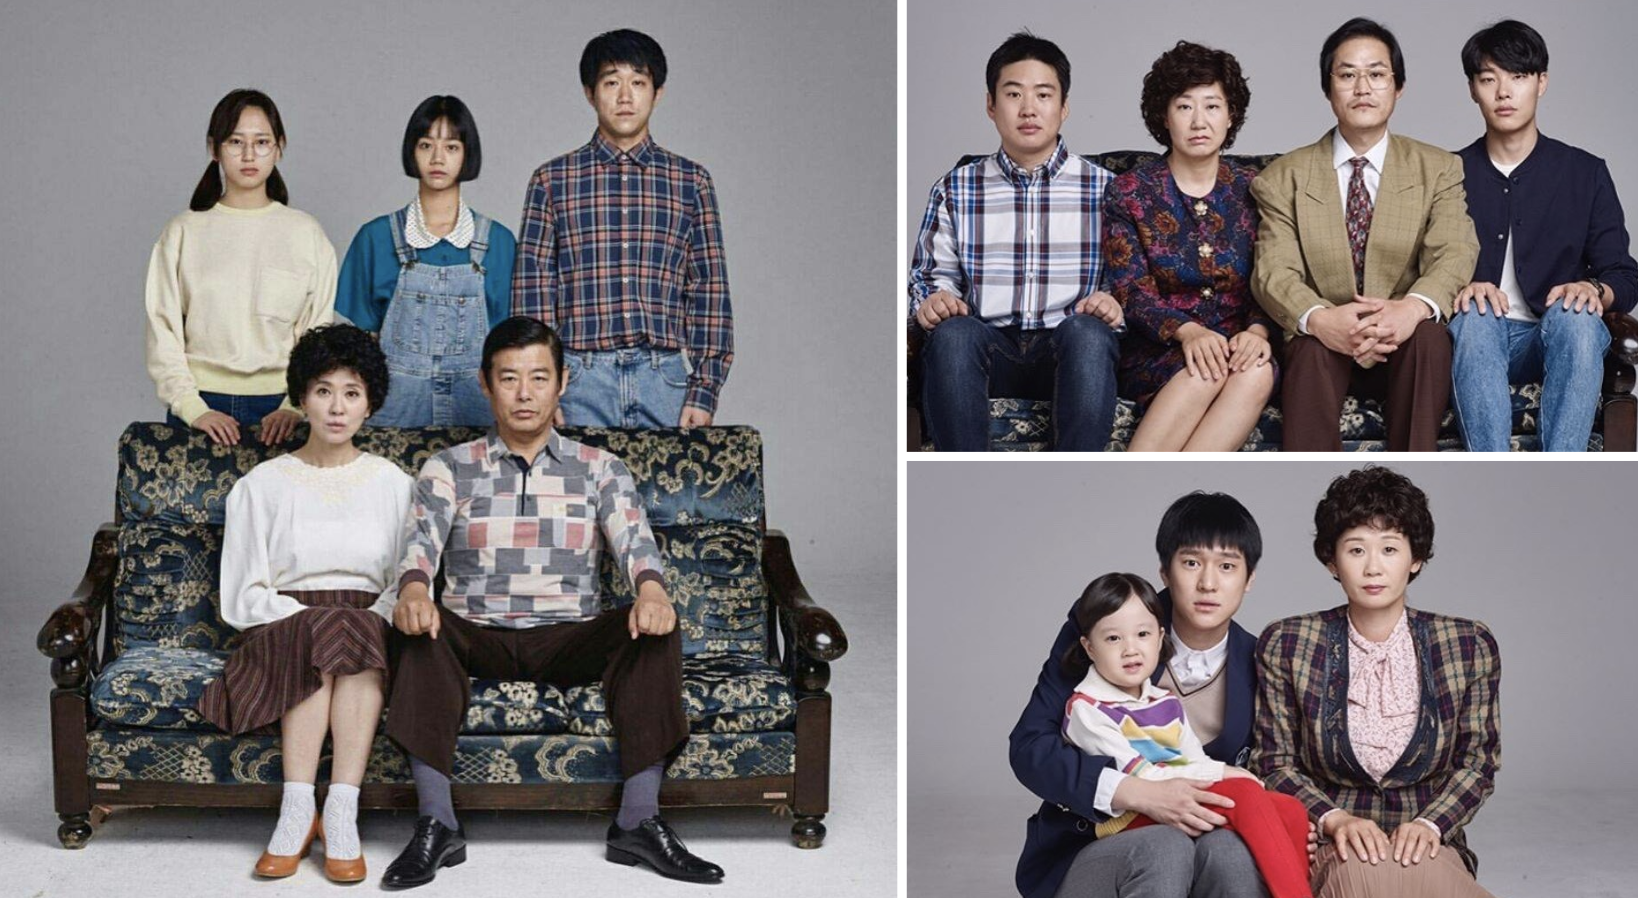 Families in Reply 1988